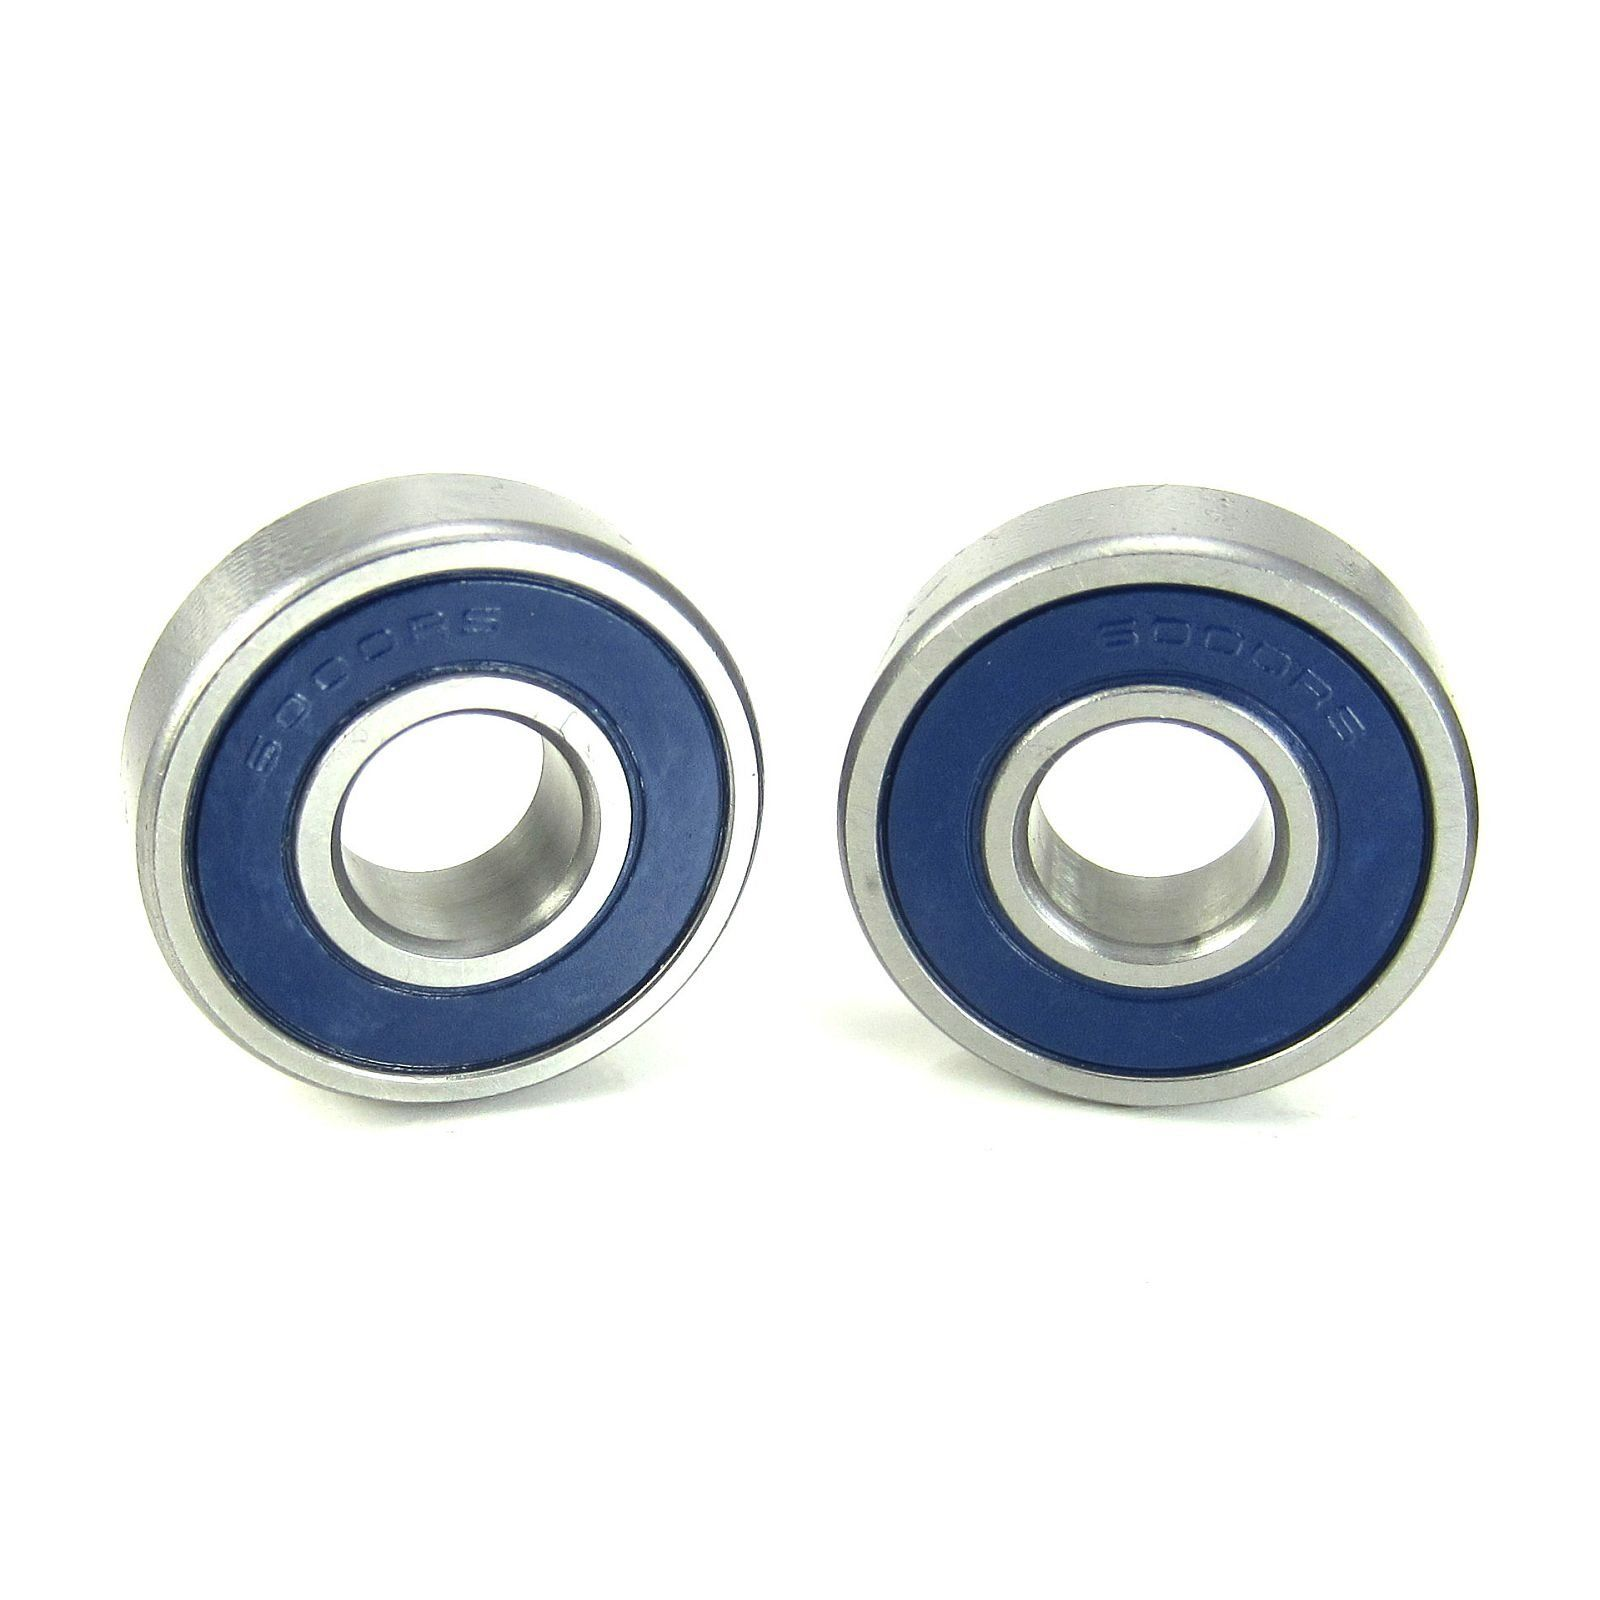 TRB RC 10x26x8mm Precision Ball Bearings ABEC 3 BLU Rubber Seals (2) - trb-rc-bearings